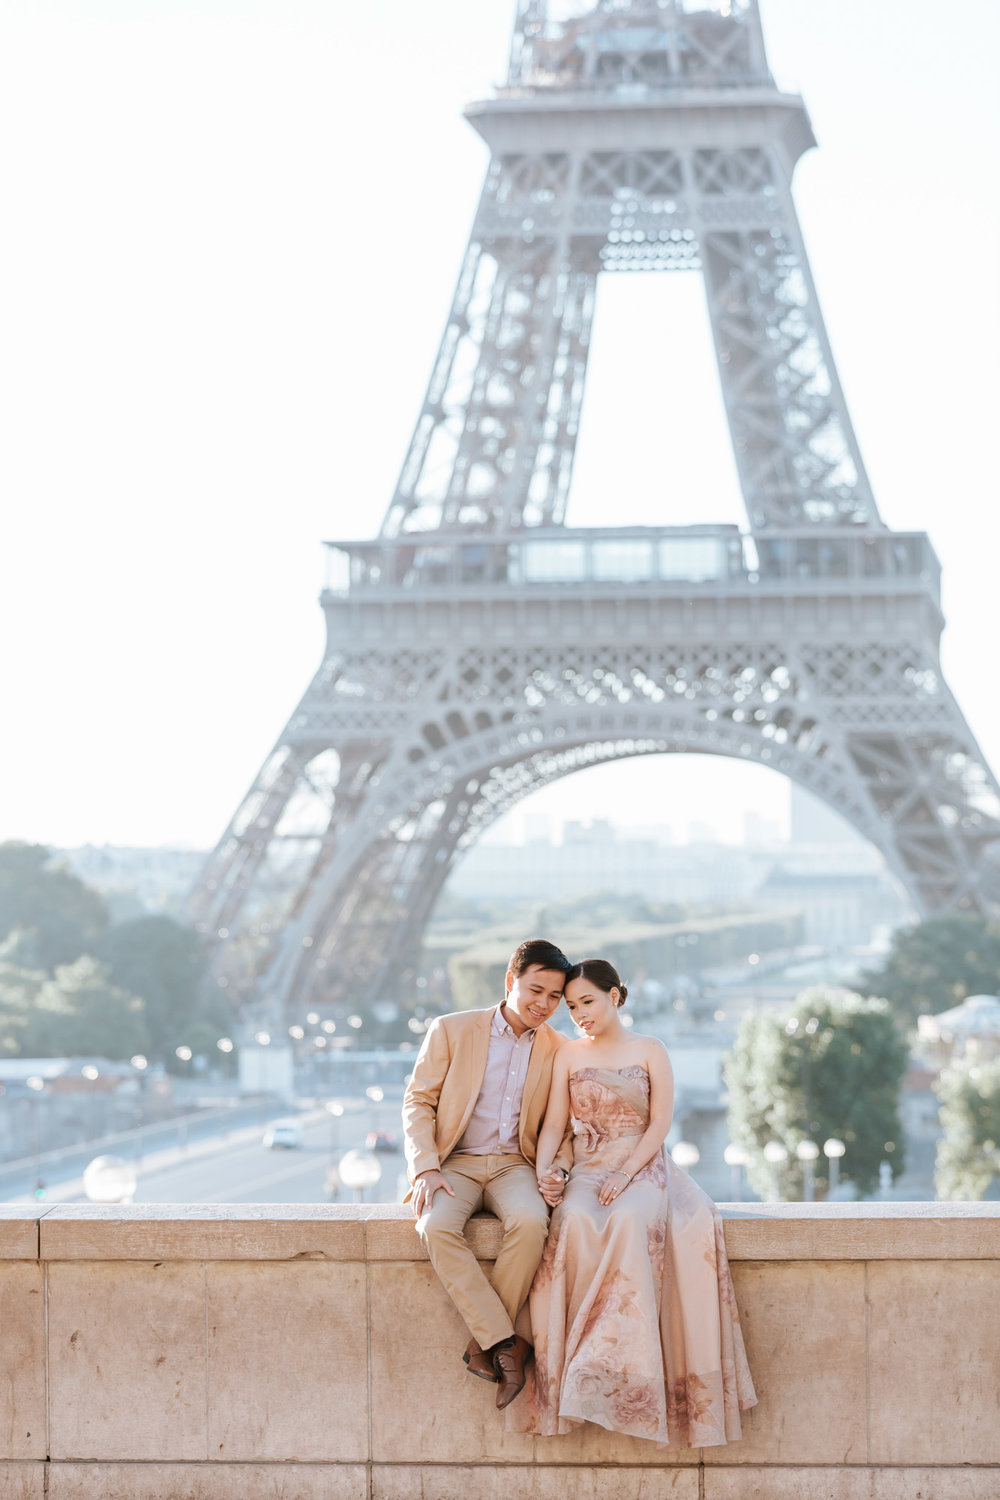 Pre-wedding couple portrait session at Trocadero by the Eiffel Tower in sunrise captured by Photographer in Paris Federico Guendel